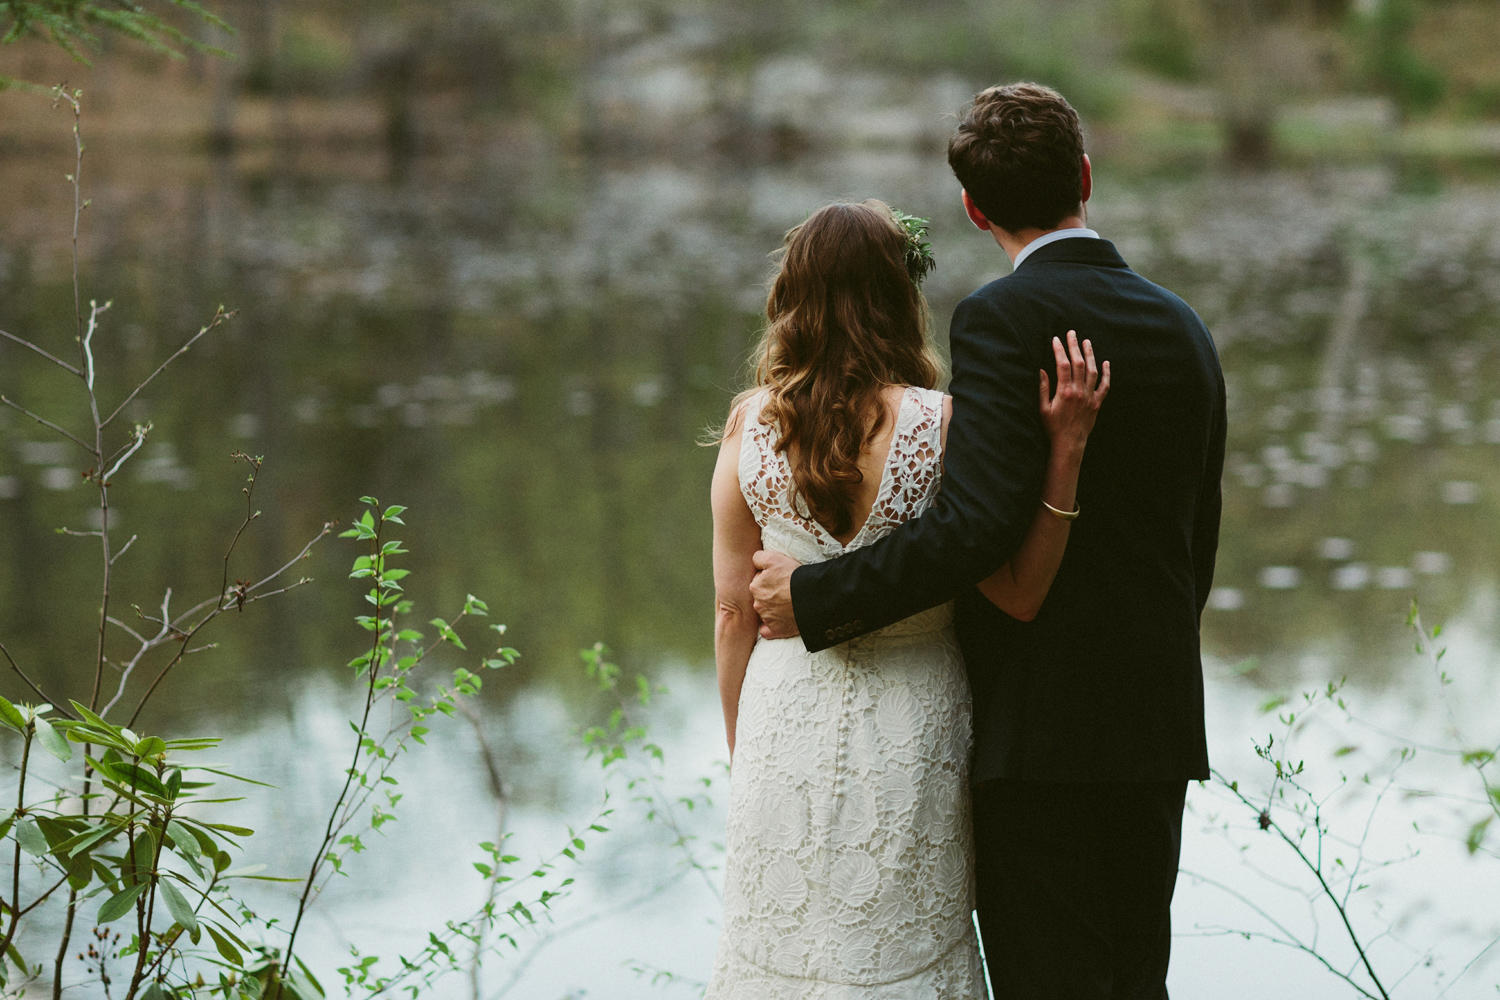 Delaware water gap wedding